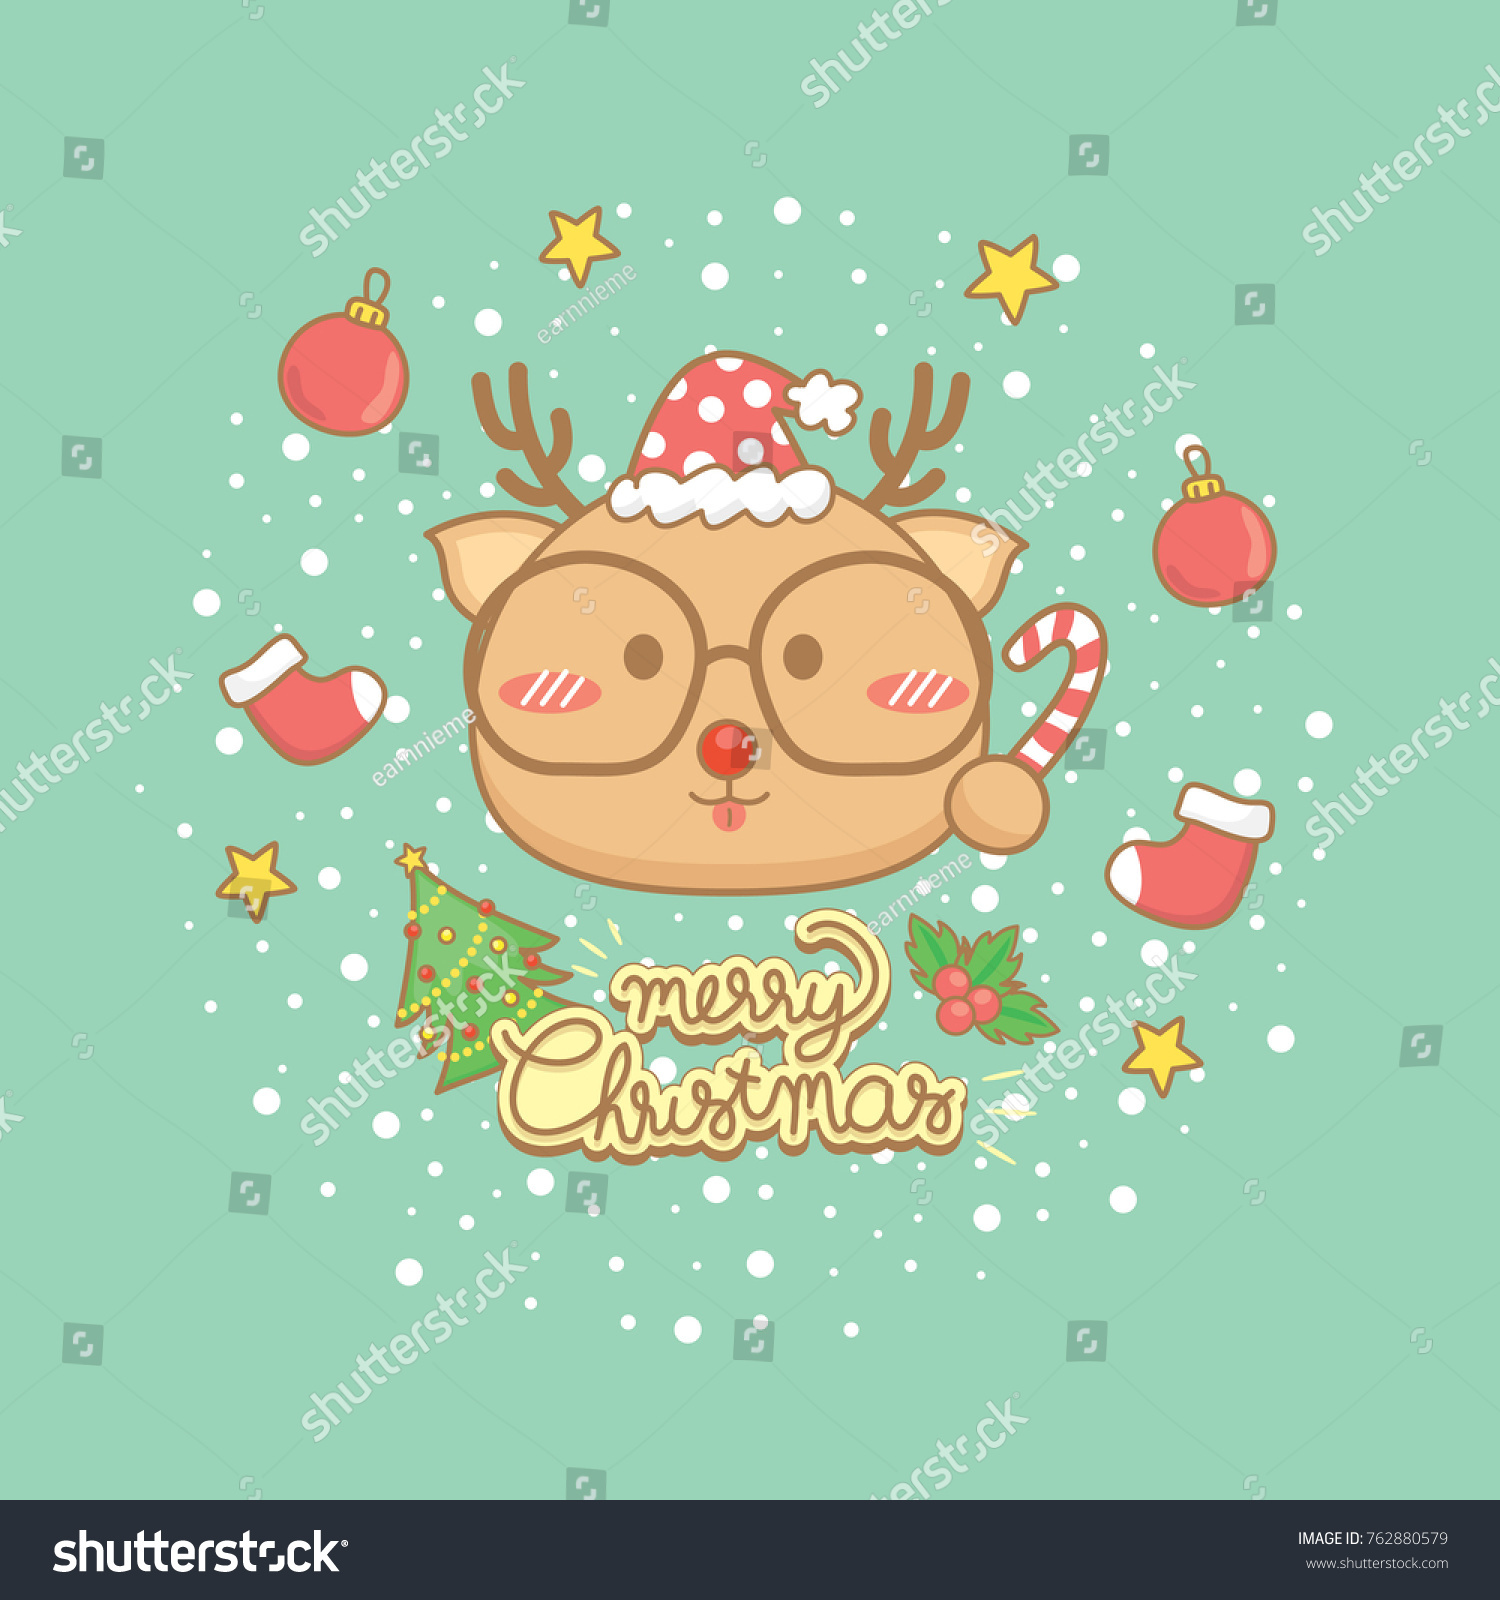 Merry christmas celebration greeting card setcute stock vector merry christmas celebration greeting card sette reindeer characters hold candy wear eye glasses kristyandbryce Gallery